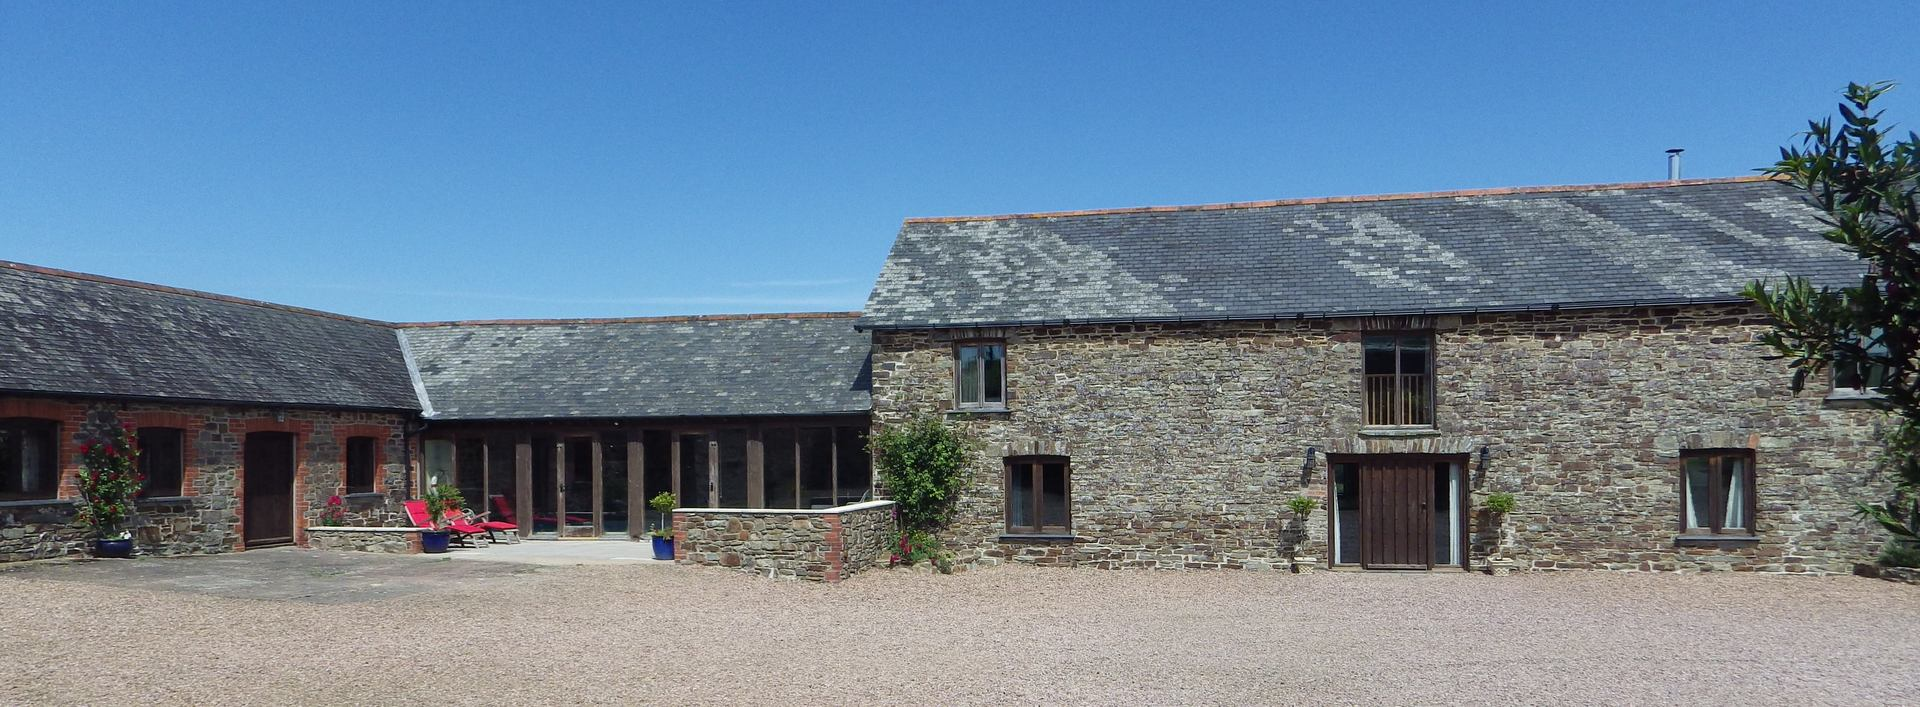 Wansley Barton Country Cottages With Heated Indoor Pool